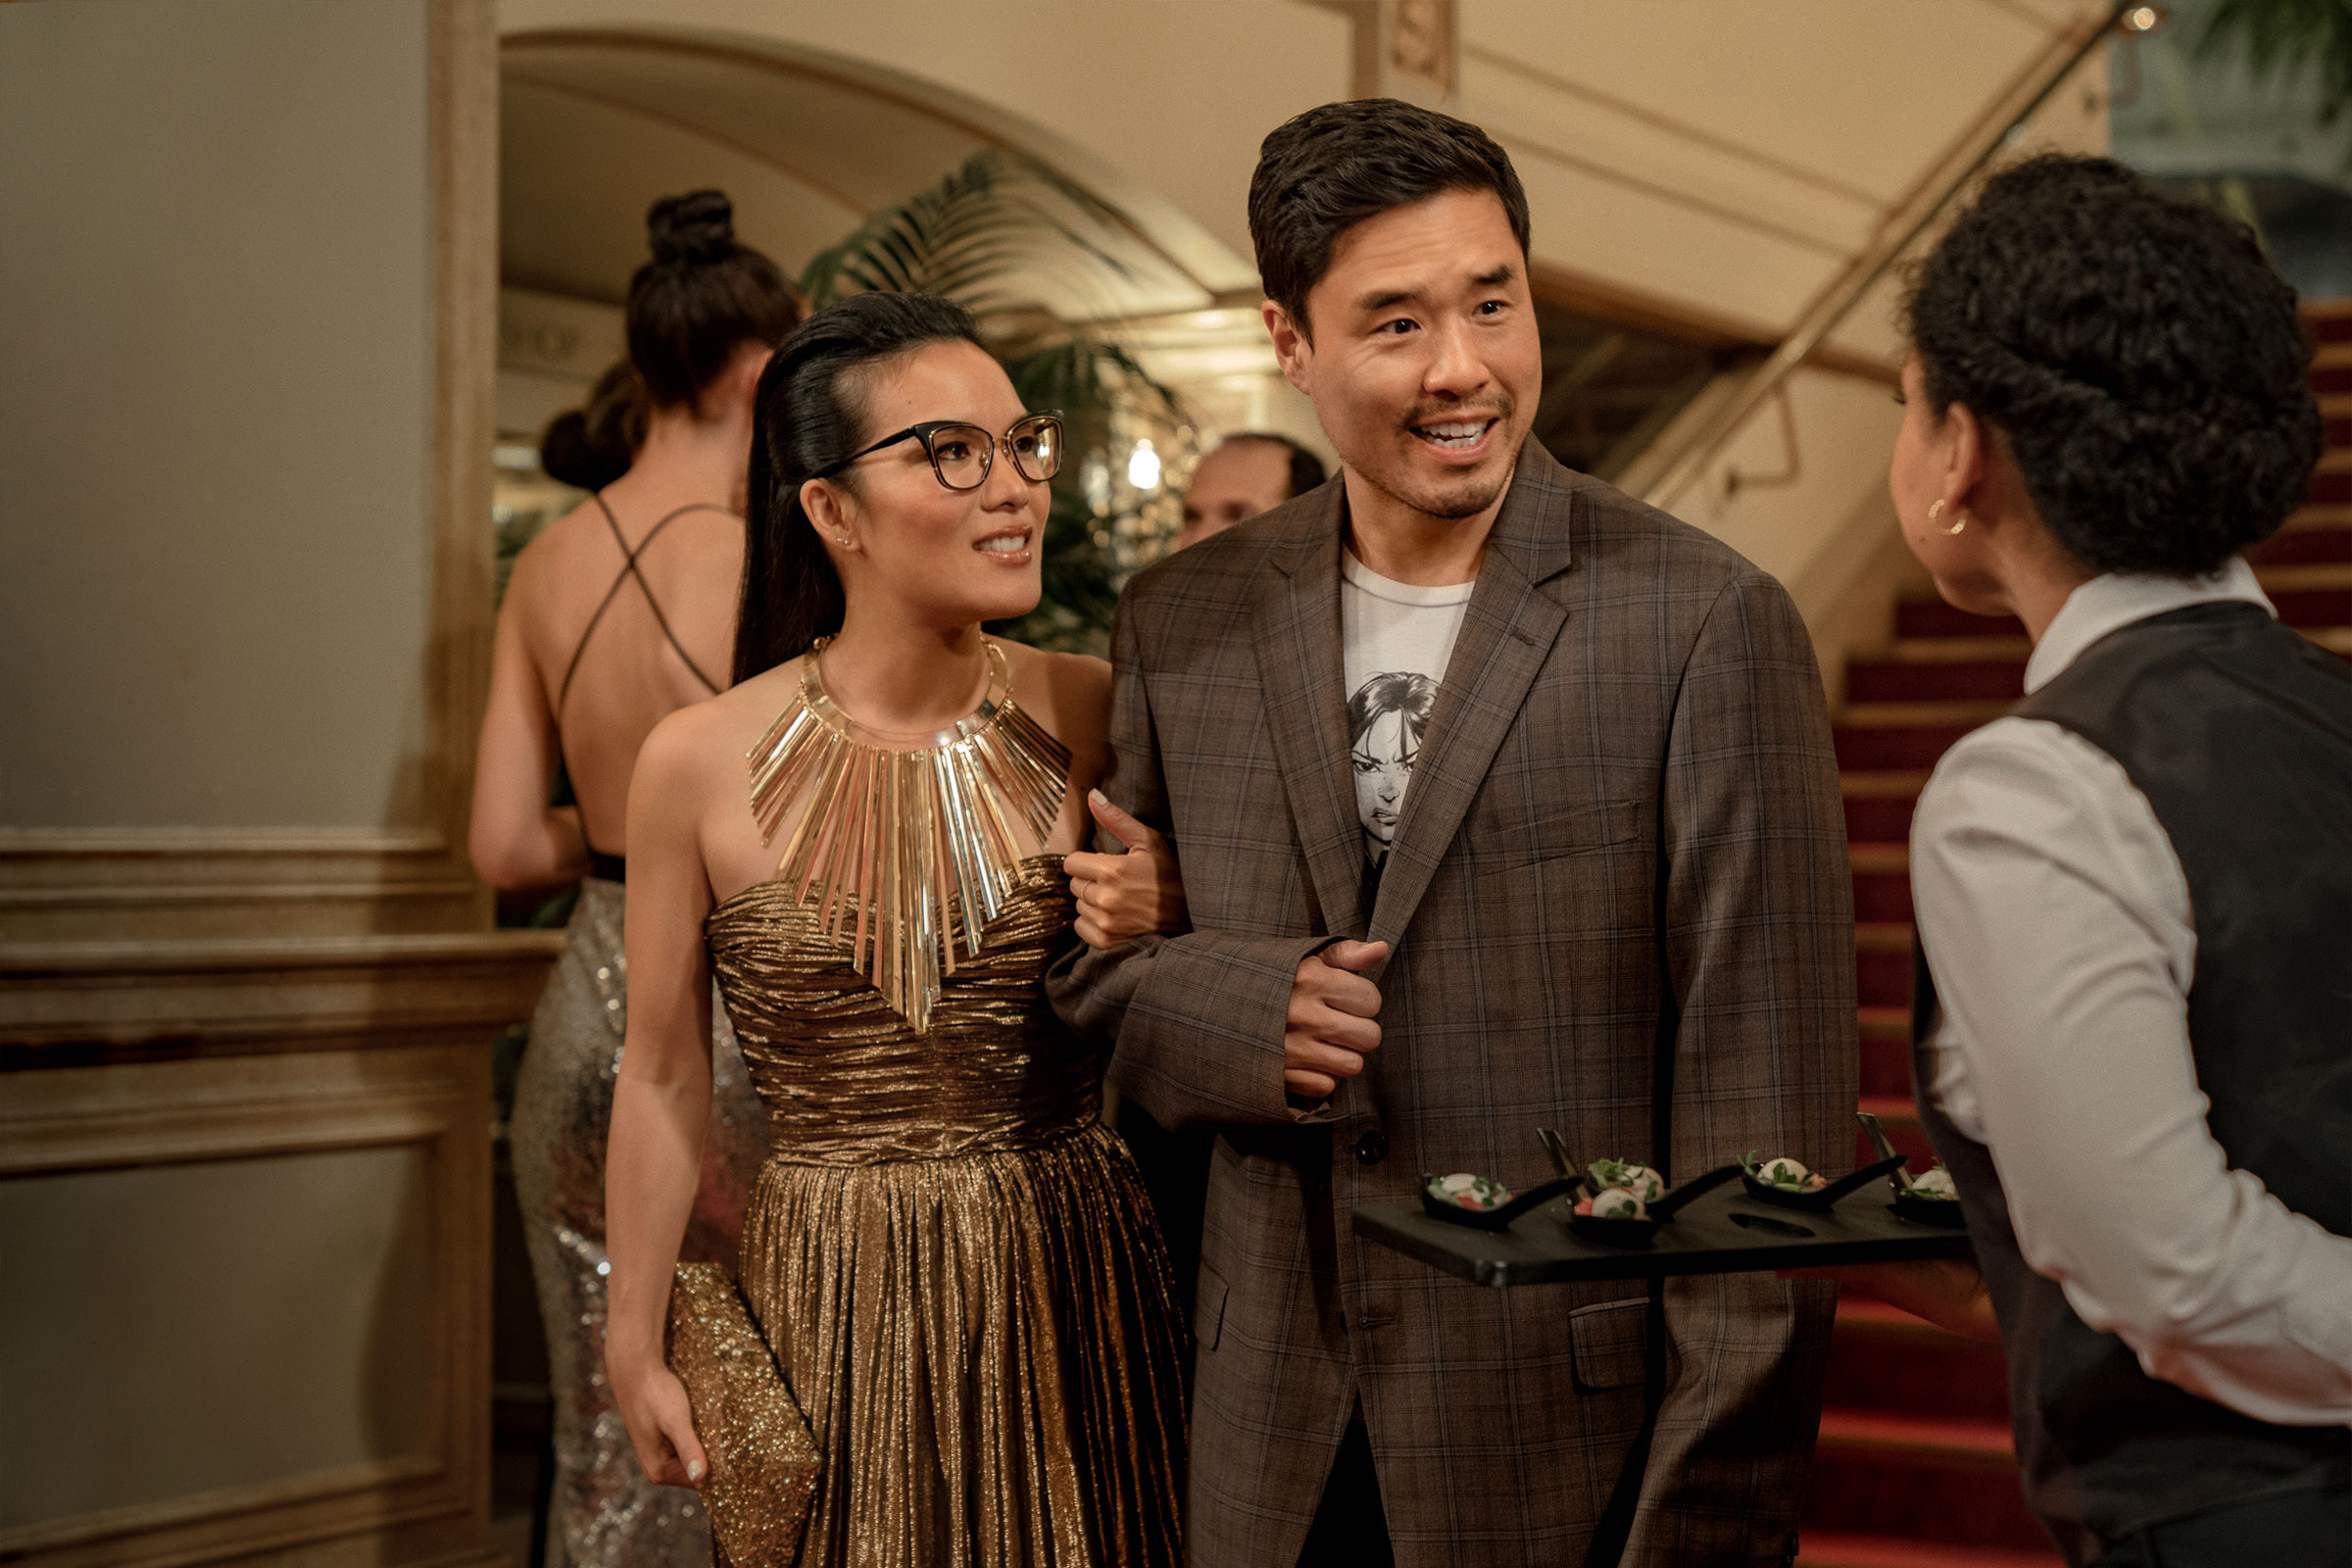 an Asian couple dressed in a gold dress and a tattered, checkered suit attend a gala together